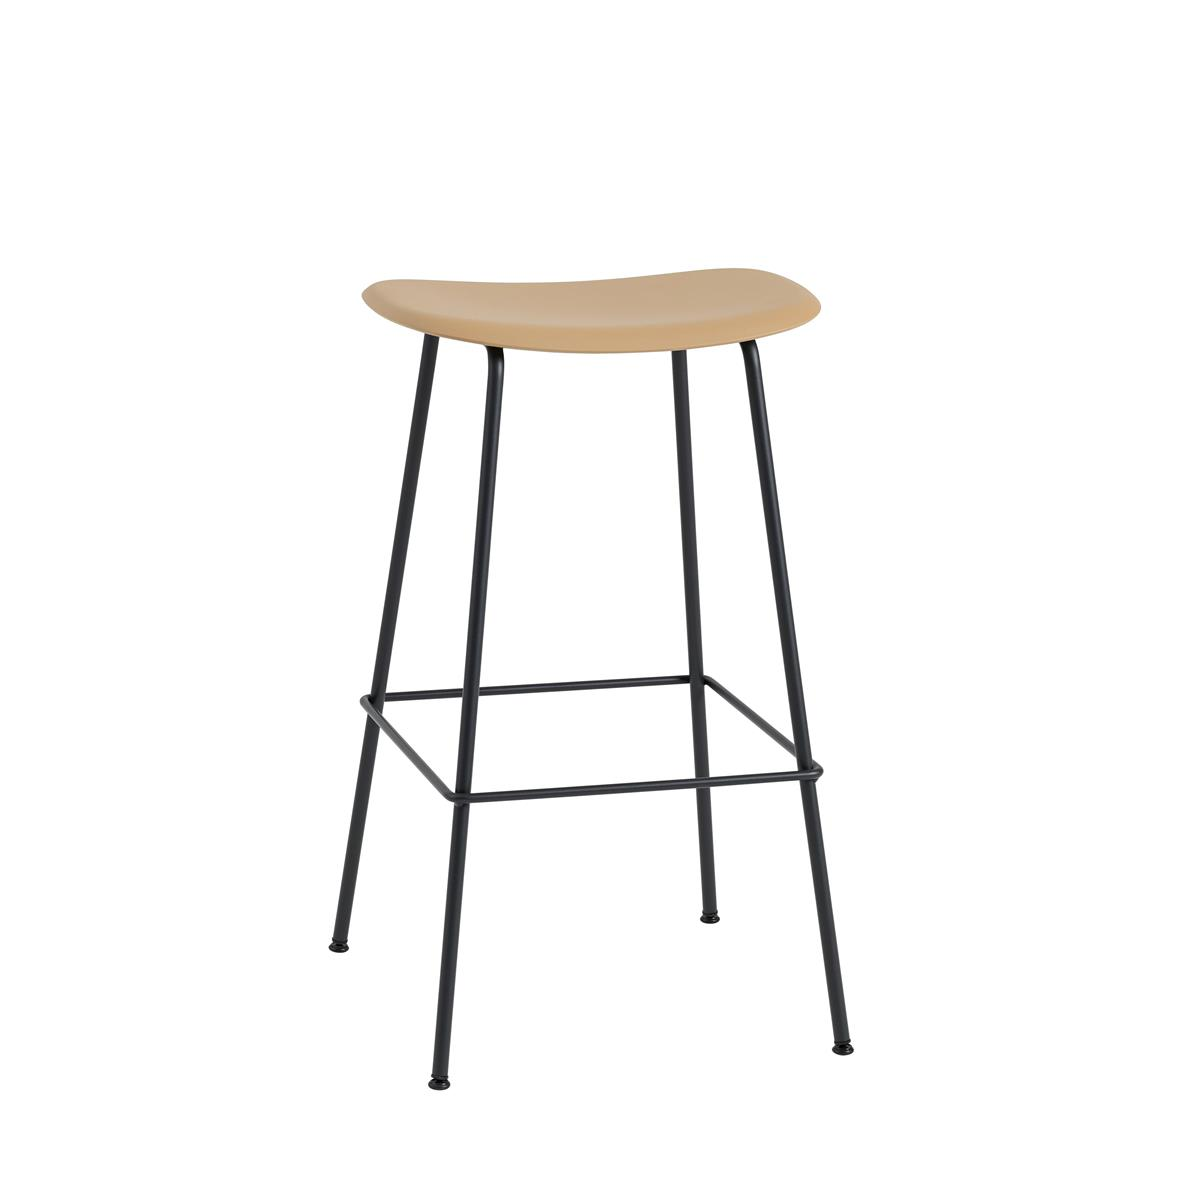 Fiber Bar Stool / Tube Base H75 - Ochre  & Black